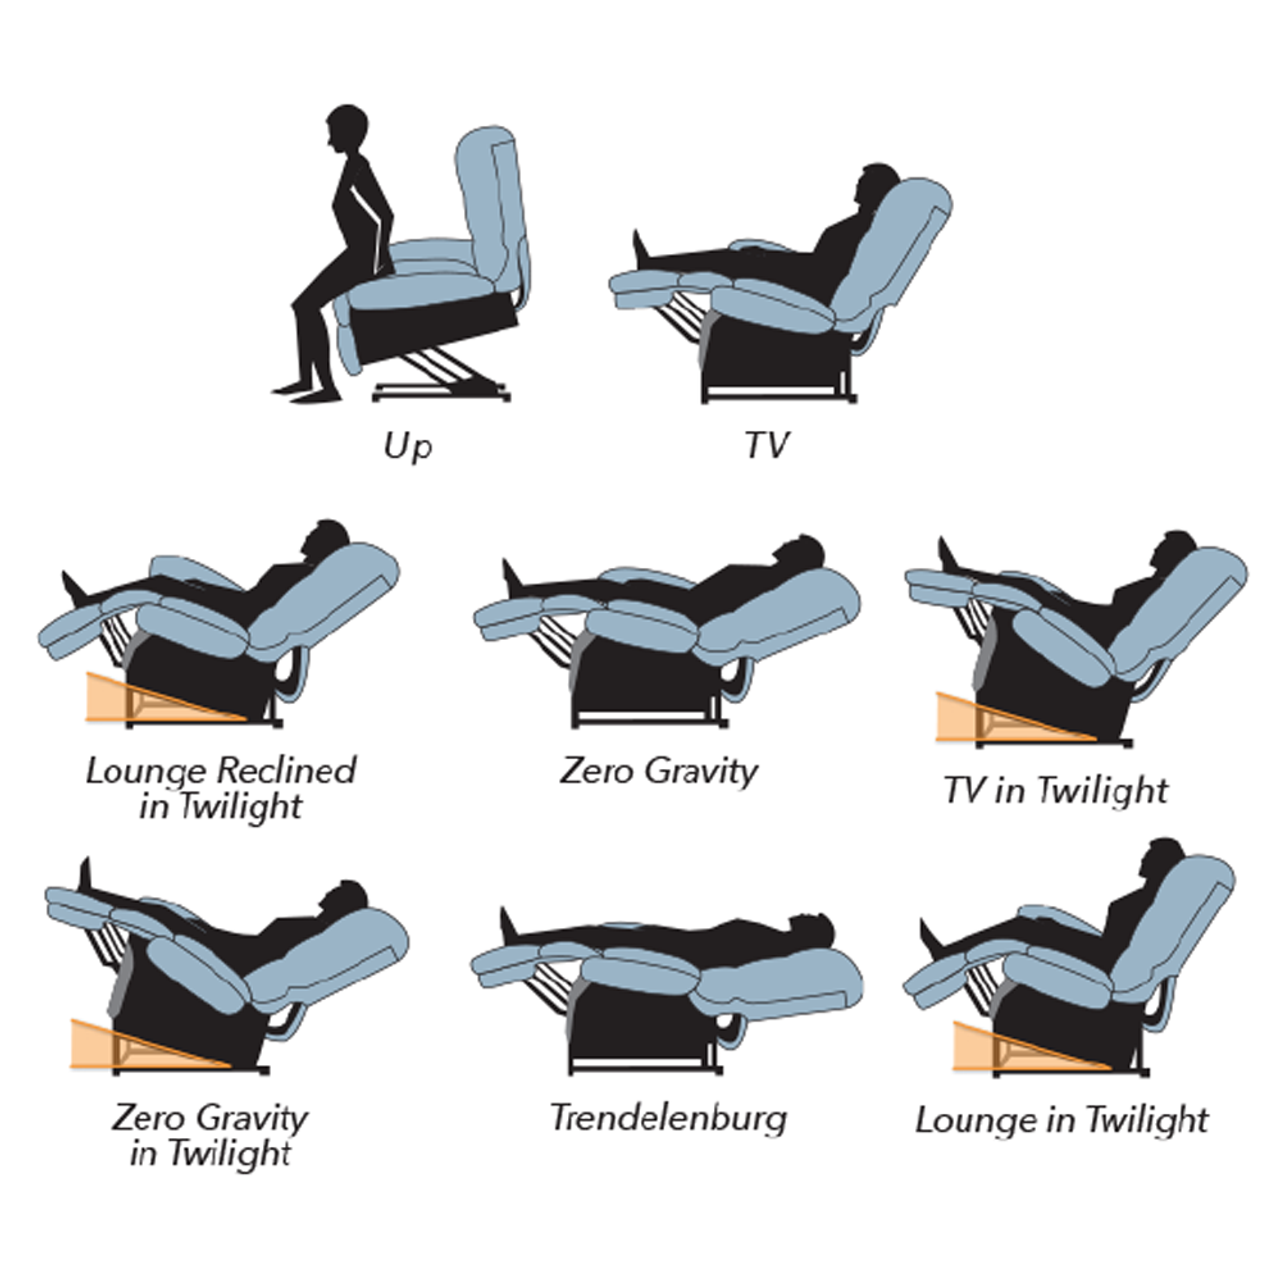 A display of the different positions that the Easy Sleeper with Twilight liftchair can